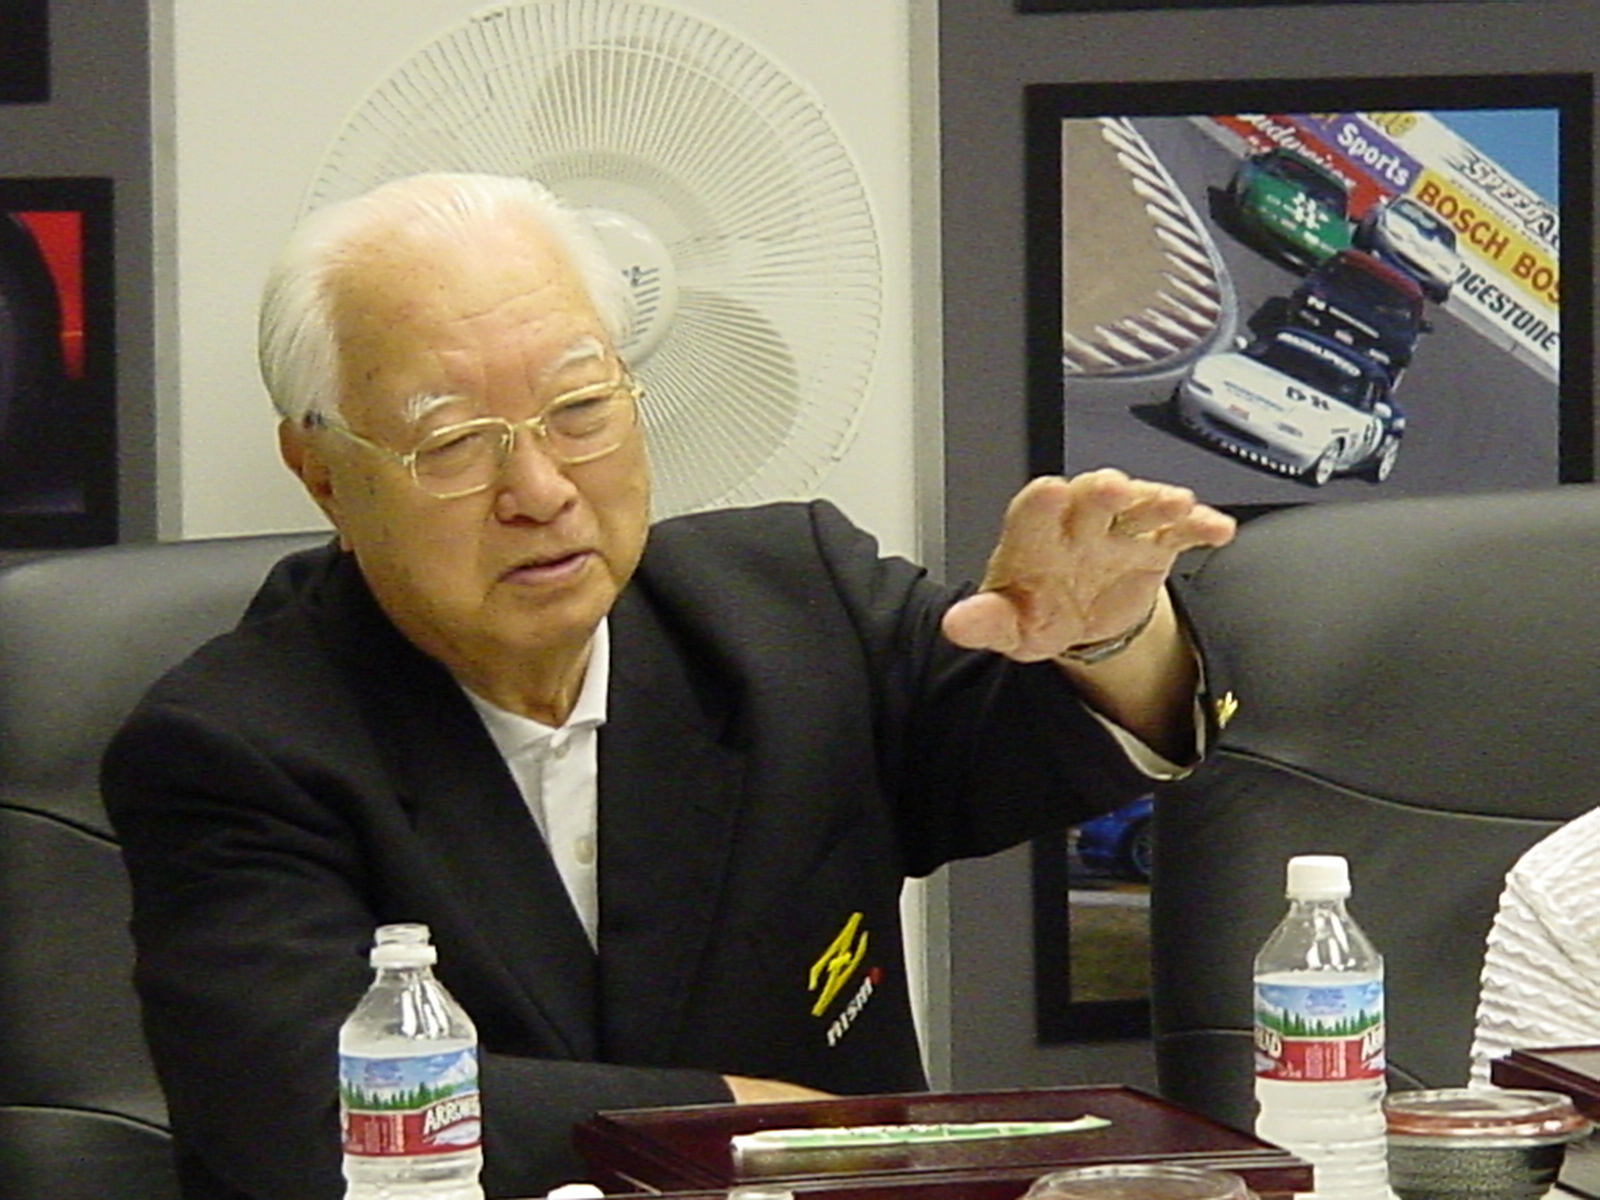 Mr. K addresses the audience at Mazdaspeed